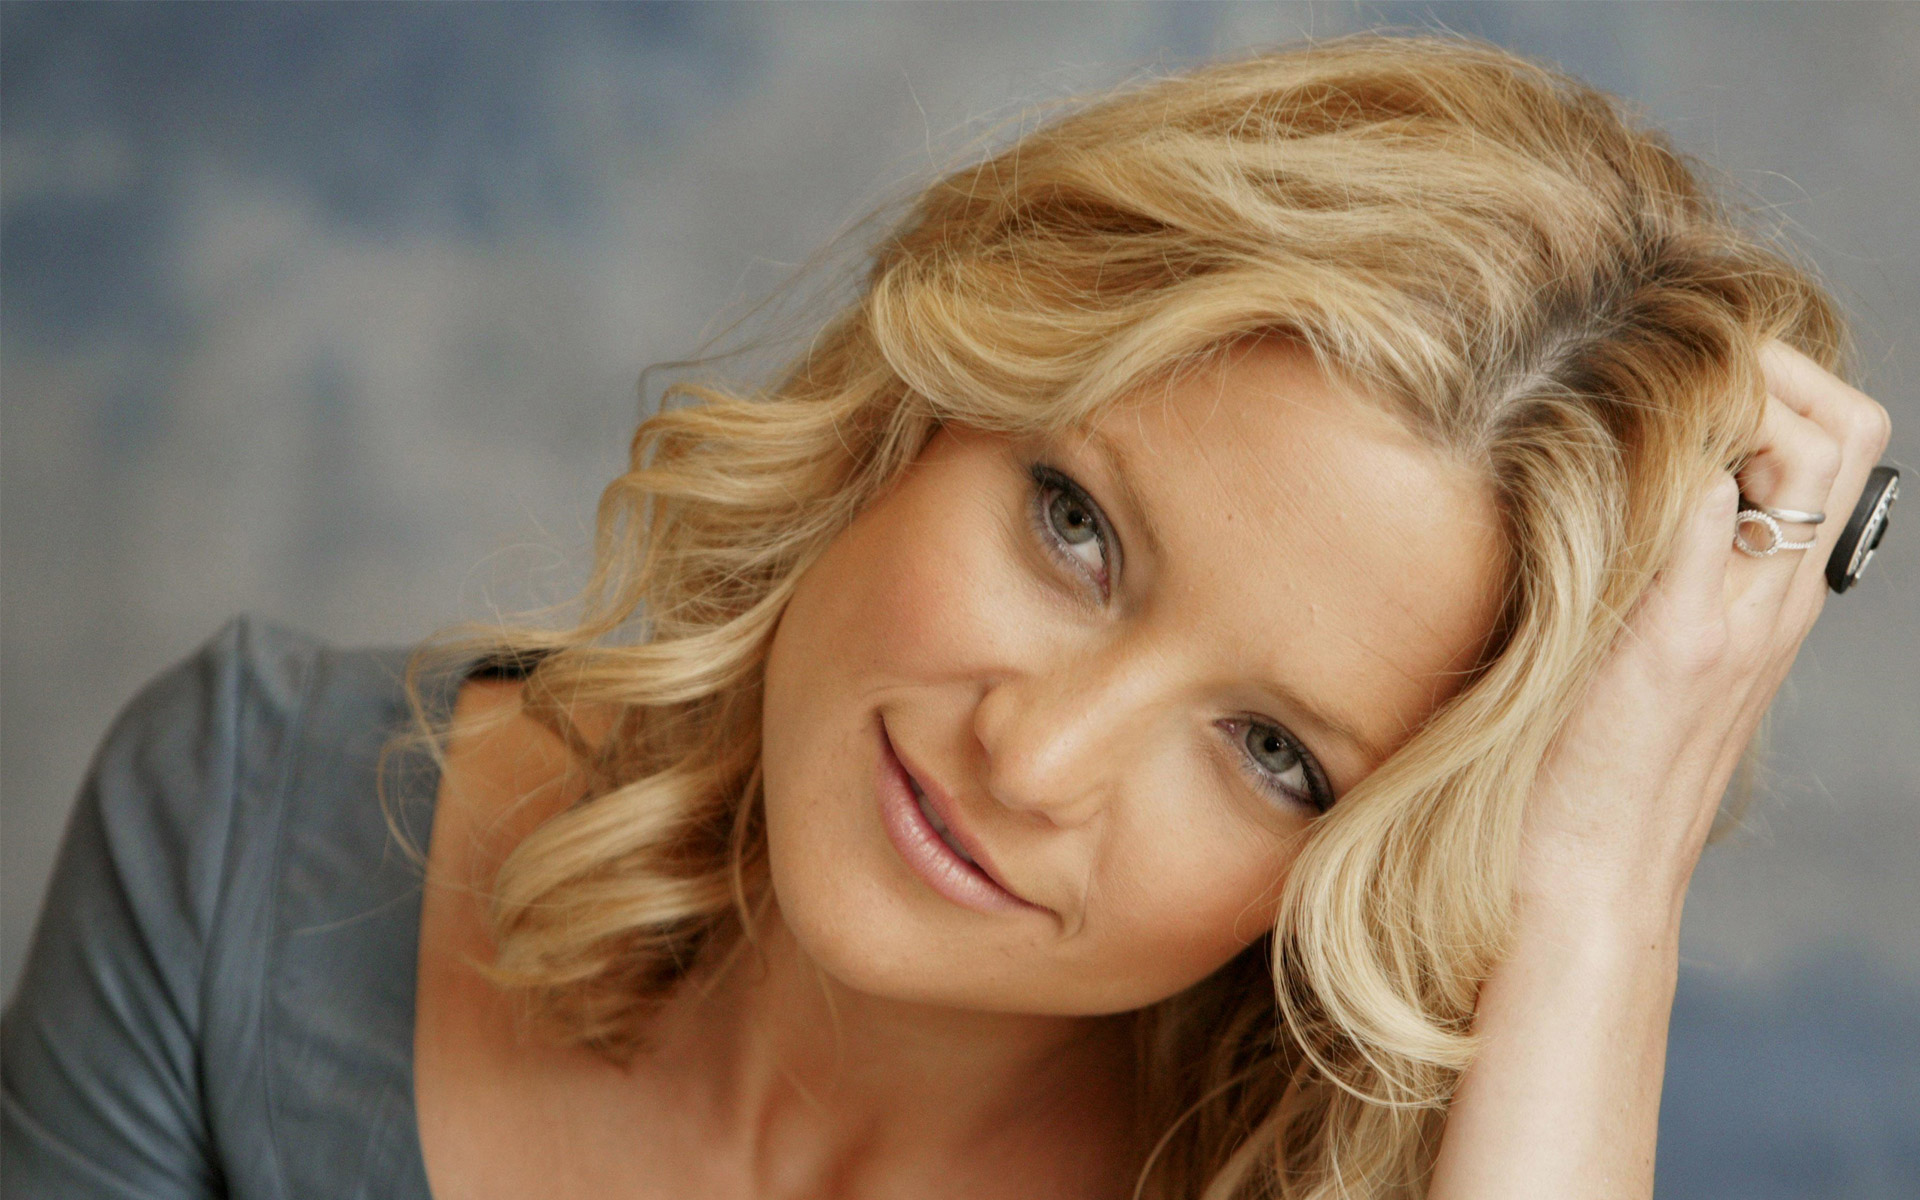 Kate Hudson Wallpapers High Resolution And Quality Download